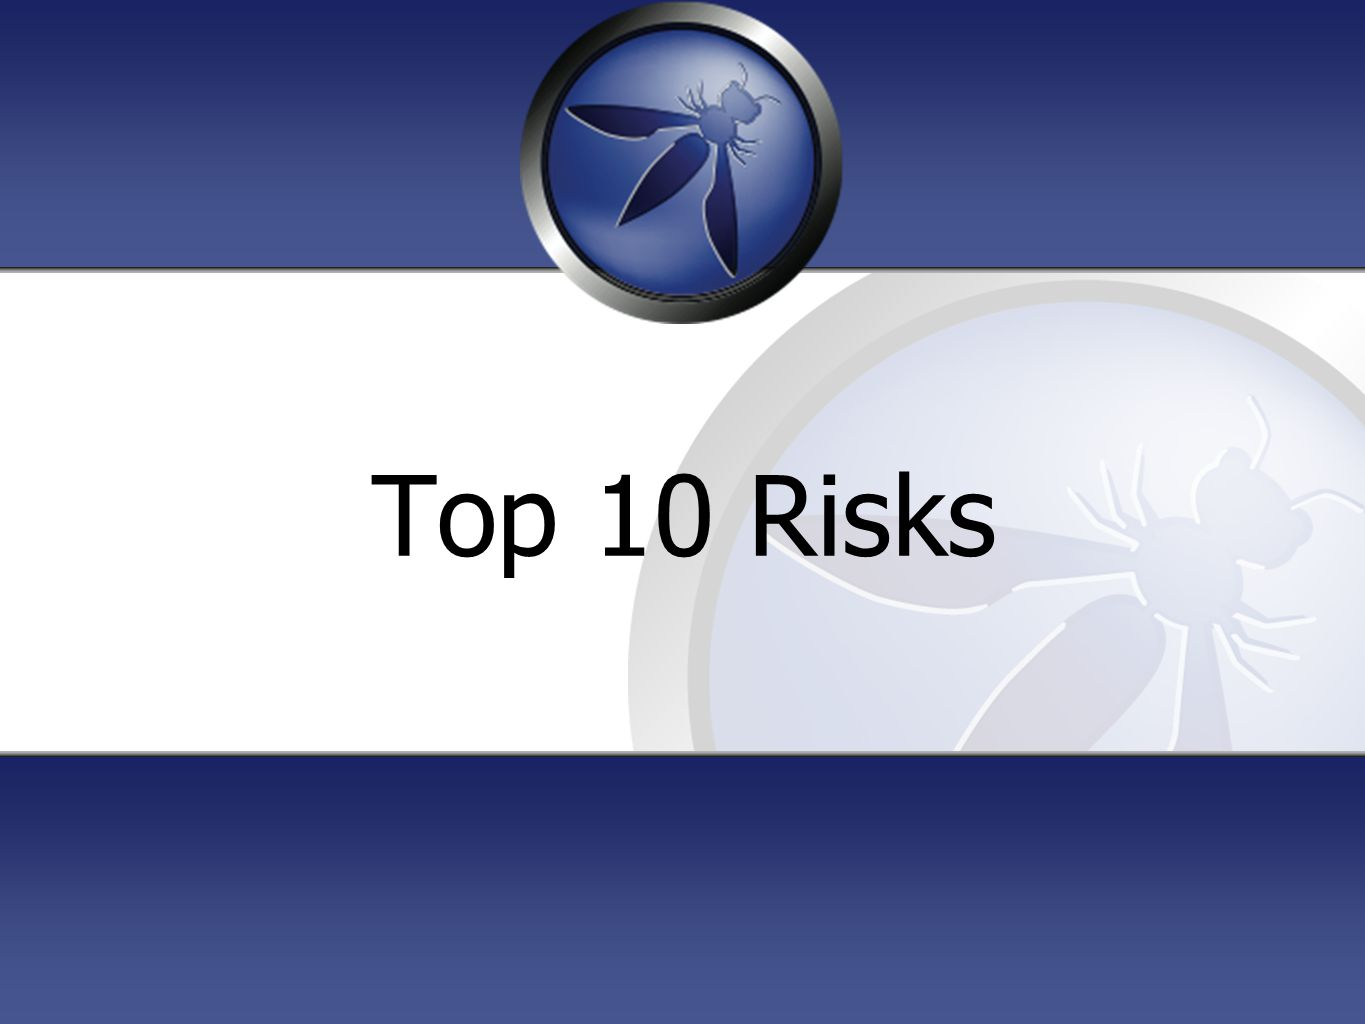 10 Top 10 Risks Intended to be platform-agnostic Focused on areas of risk rather than individual vulnerabilities Weighted utilizing the OWASP Risk Rating Methodology https://www.owasp.org/index.php/OWASP_Risk_Rating_Methodology Thanks to everyone who participated